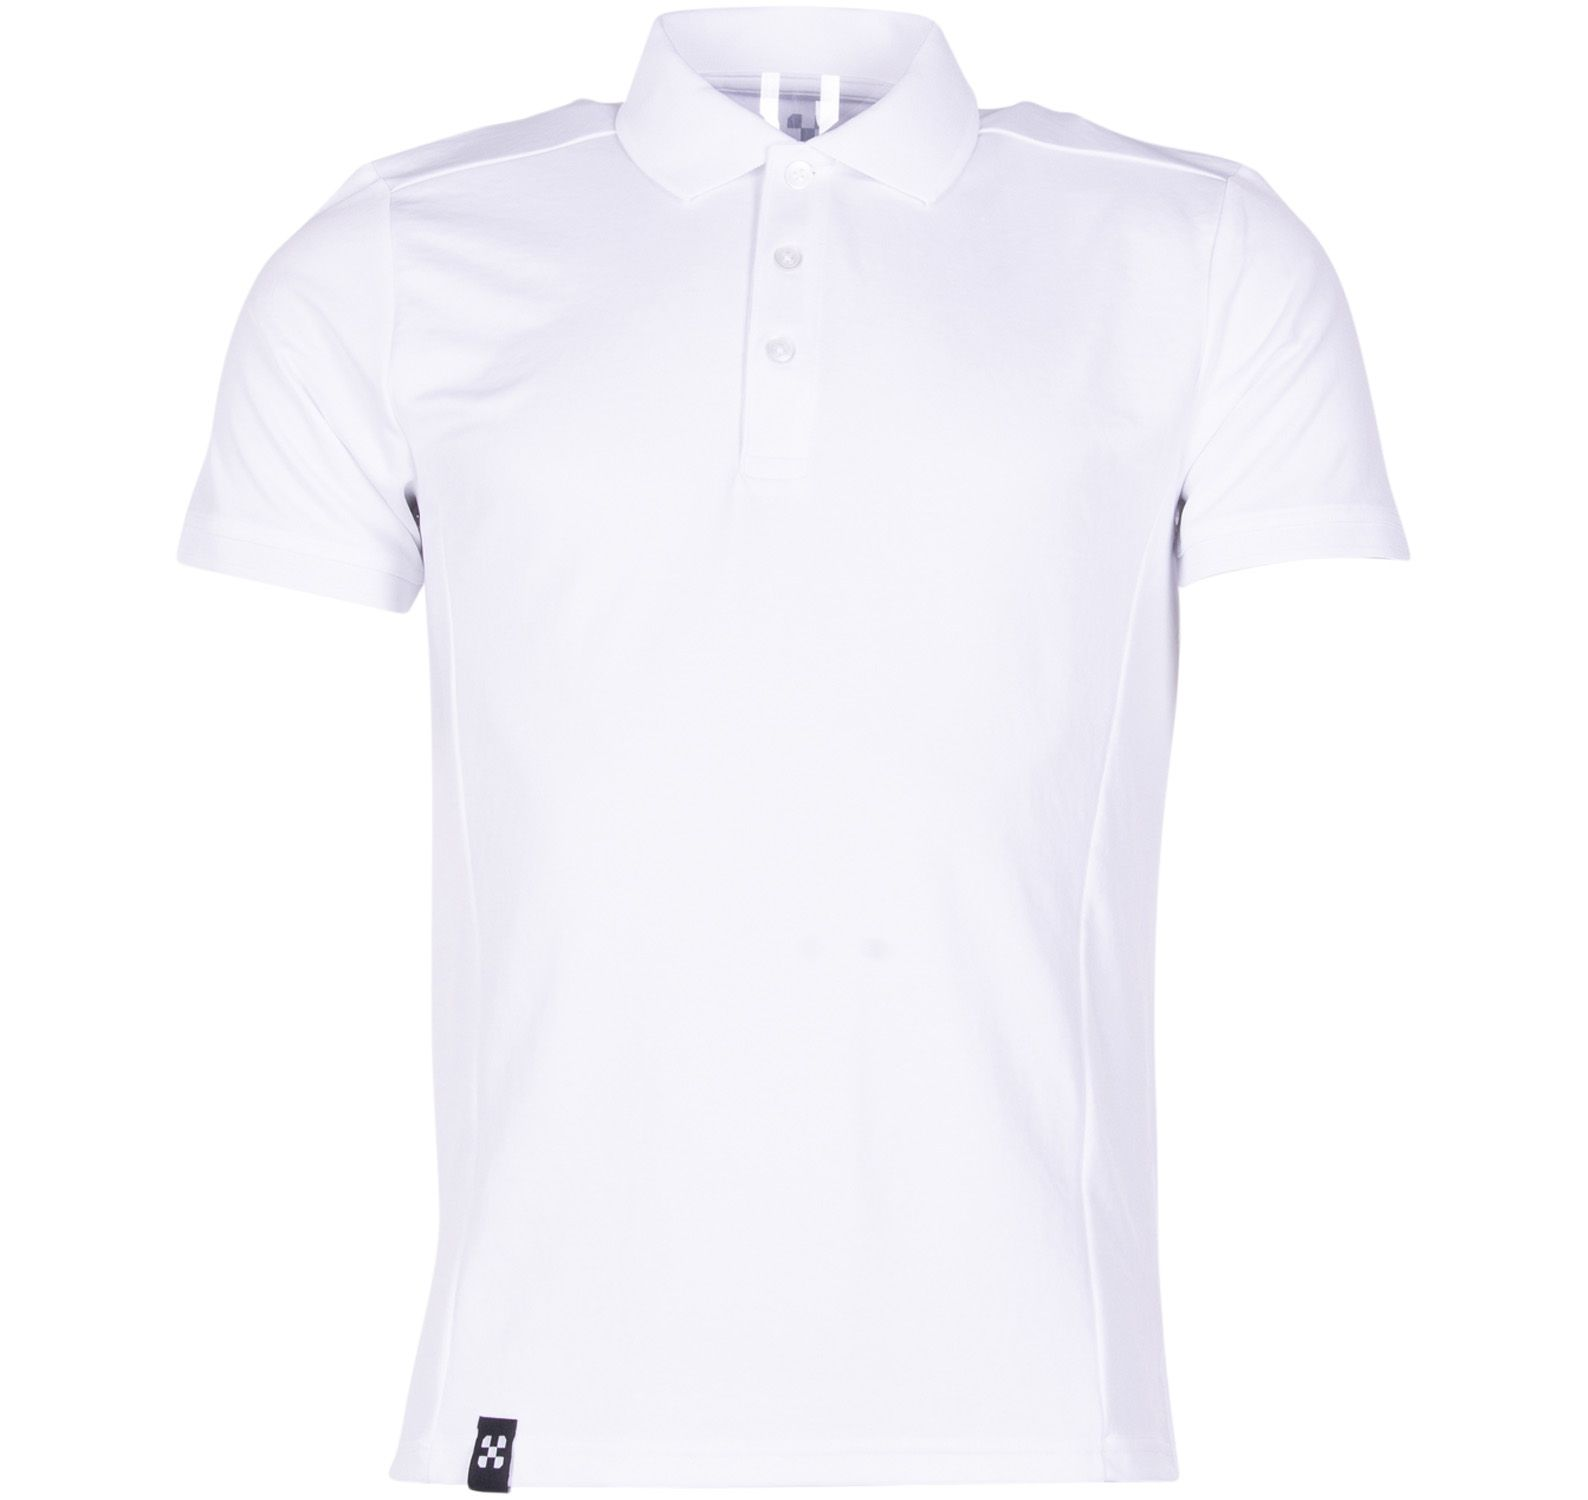 active piké, white, 2xl,  x-trail